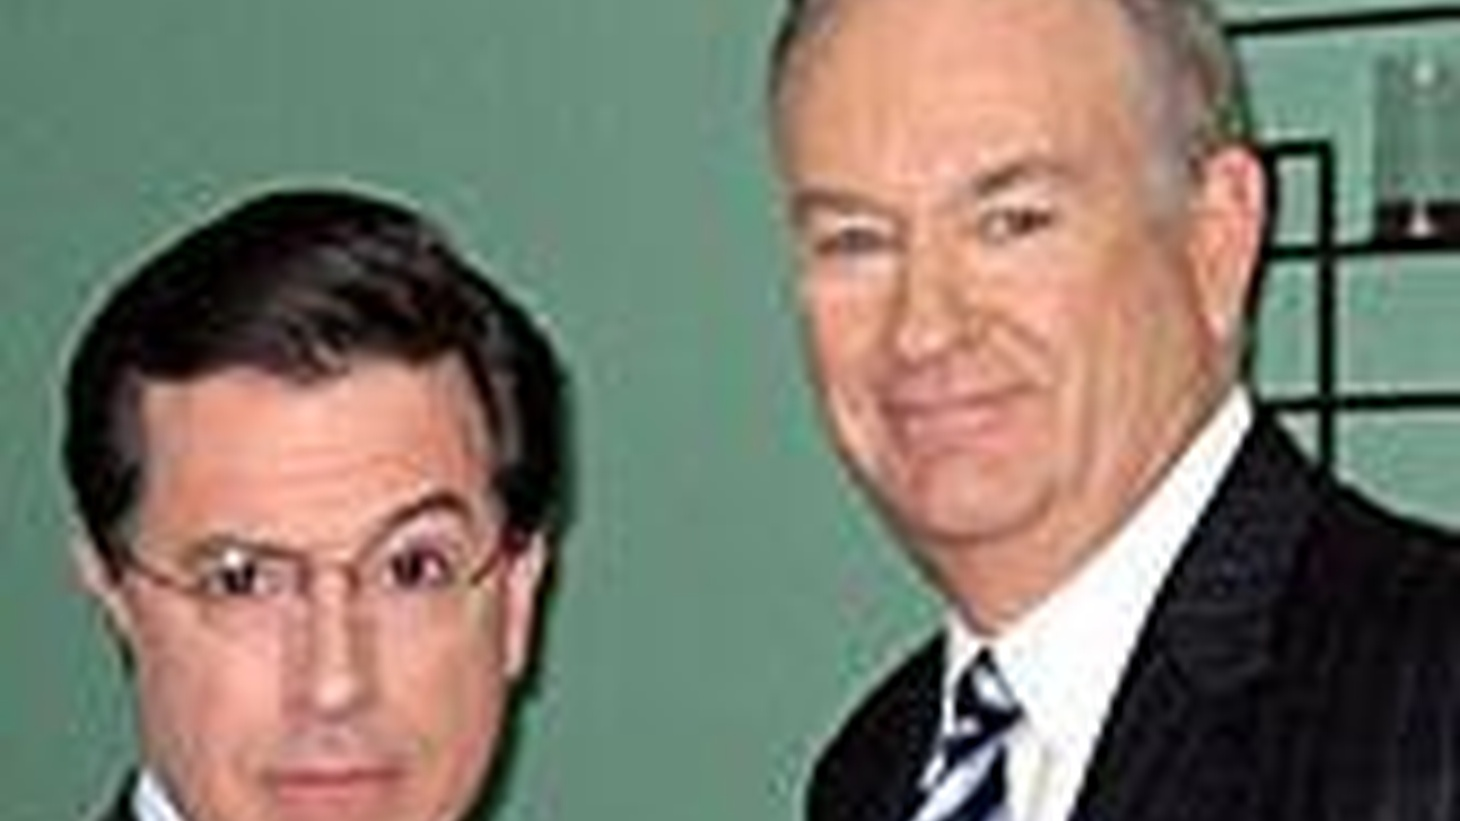 """...seeing double last Thursday, when Stephen Colbert paid a visit to Fox News Channel's """"O'Reilly Factor,"""" then welcomed Bill O'Reilly to his Comedy Central show, """"The Colbert Report""""..."""